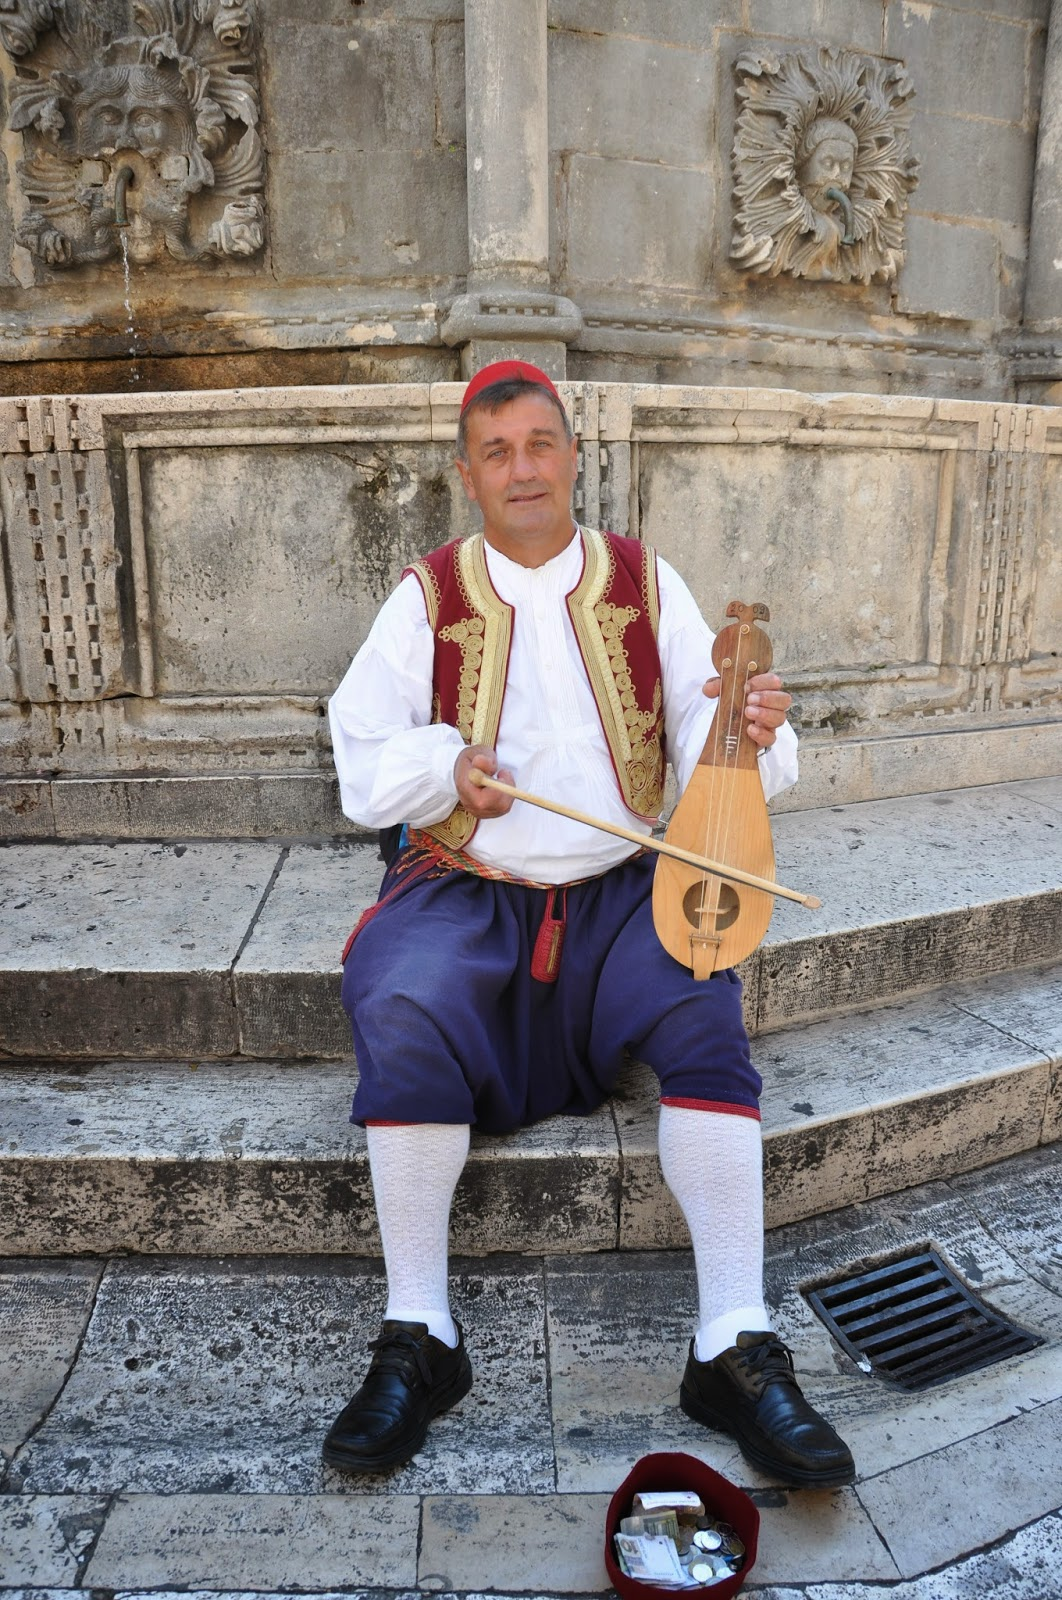 Musician, Old Town, Dubrovnik